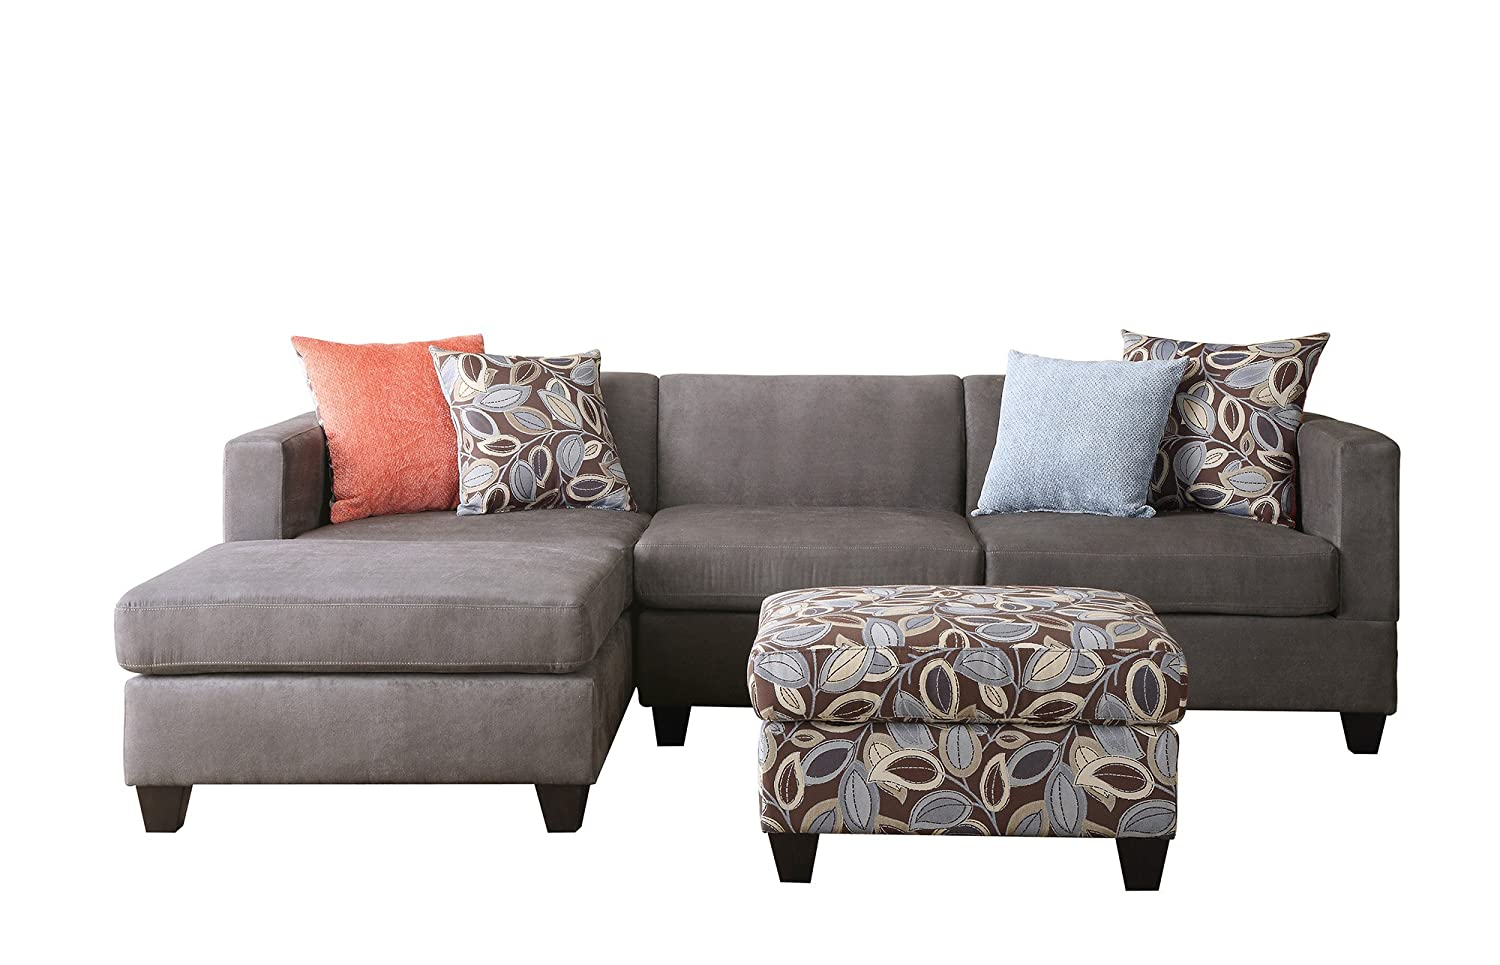 Bobkona Poundex Simplistic Couch Chaise